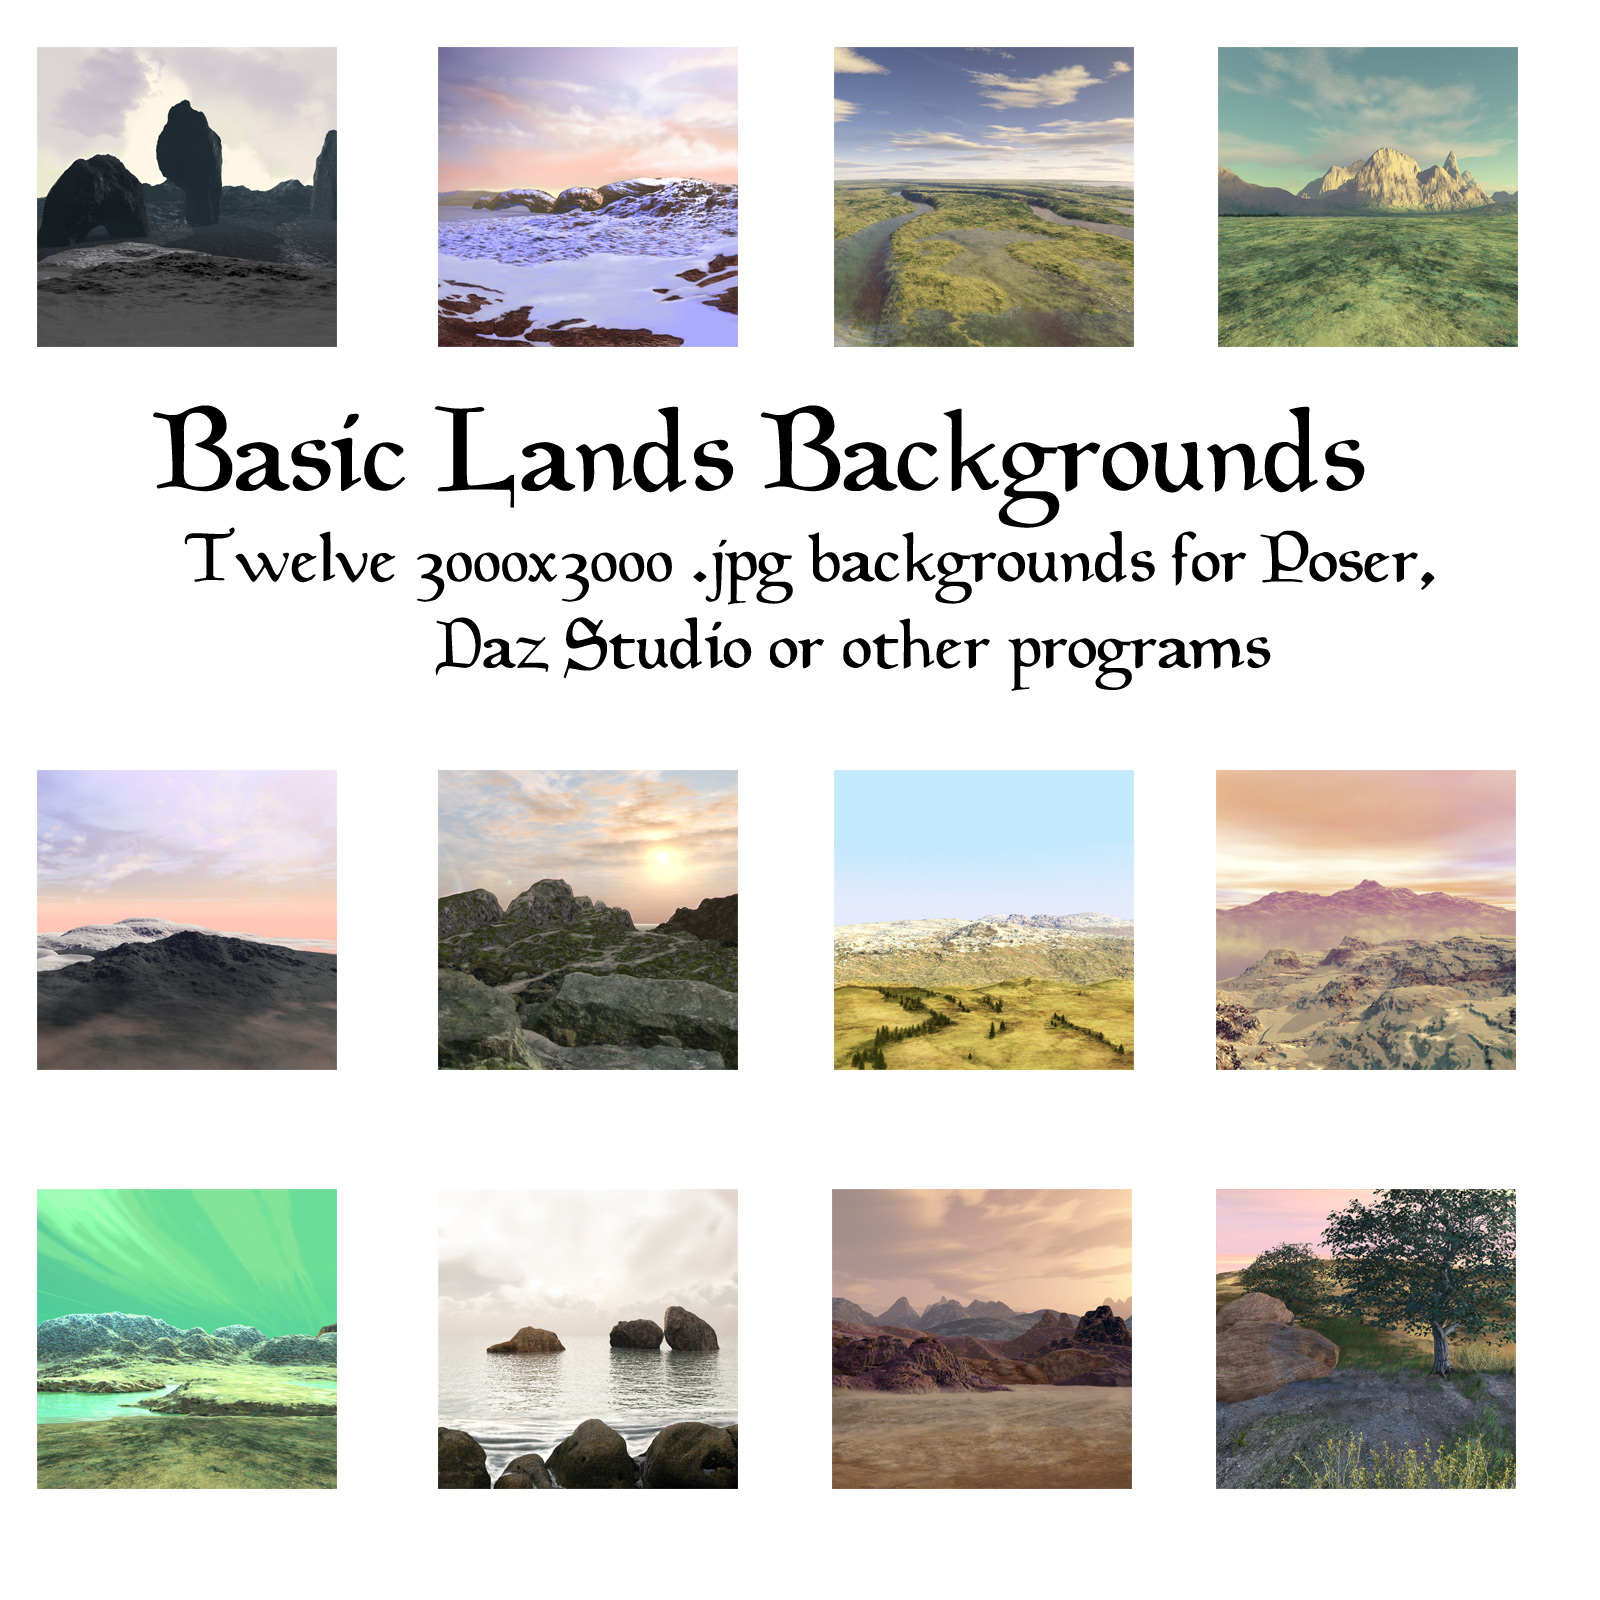 Basic Lands Backgrounds